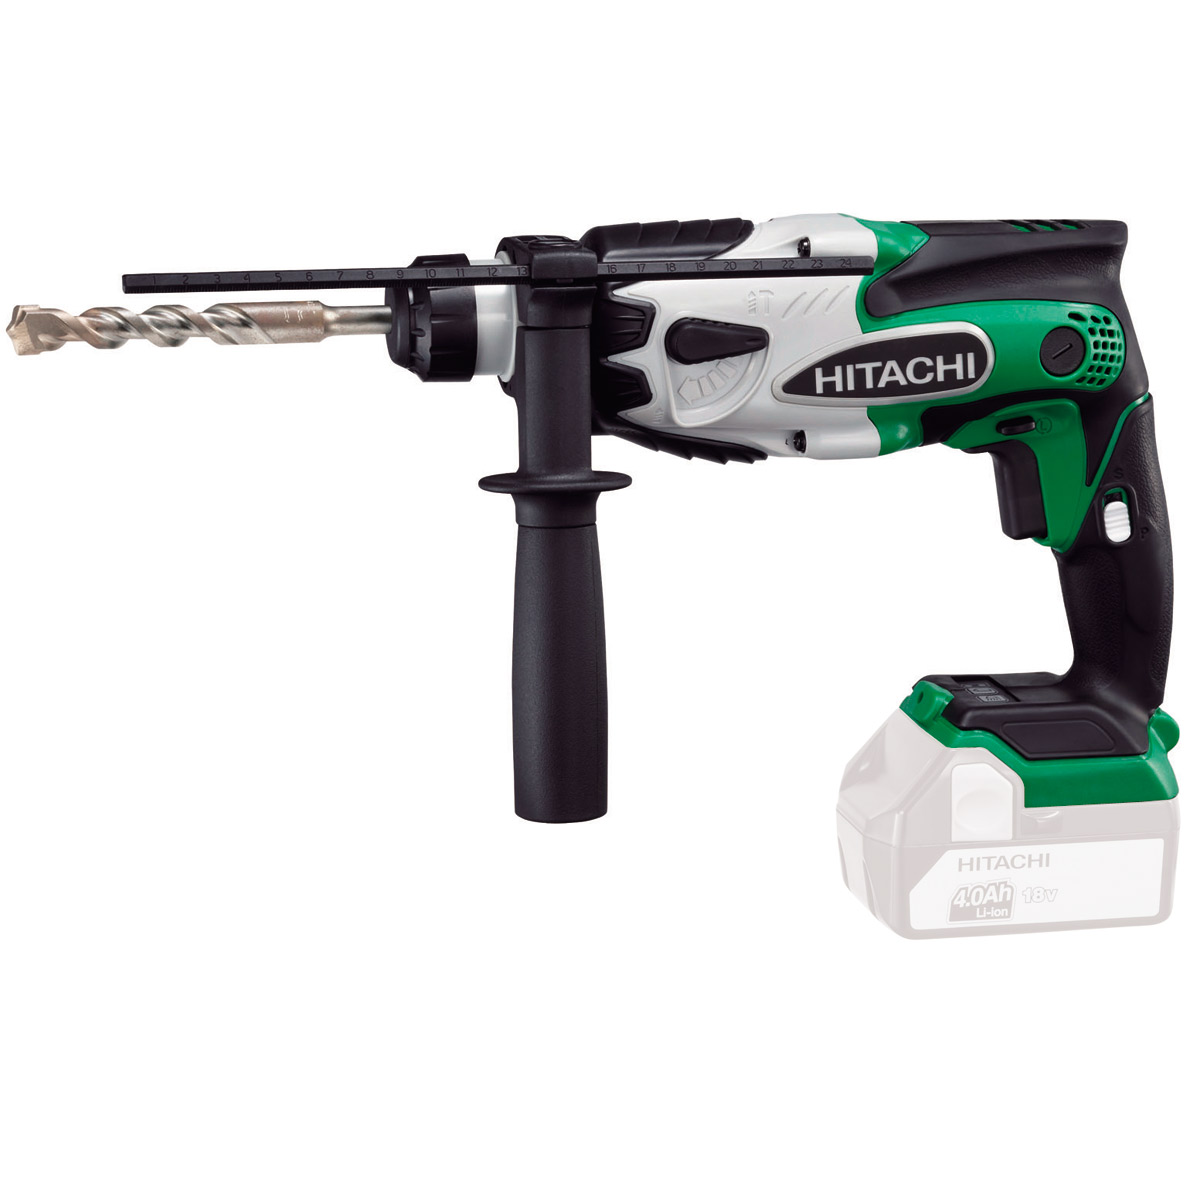 HITACHI DH18DSL/L4 18V SDS DRILL(Body Only)